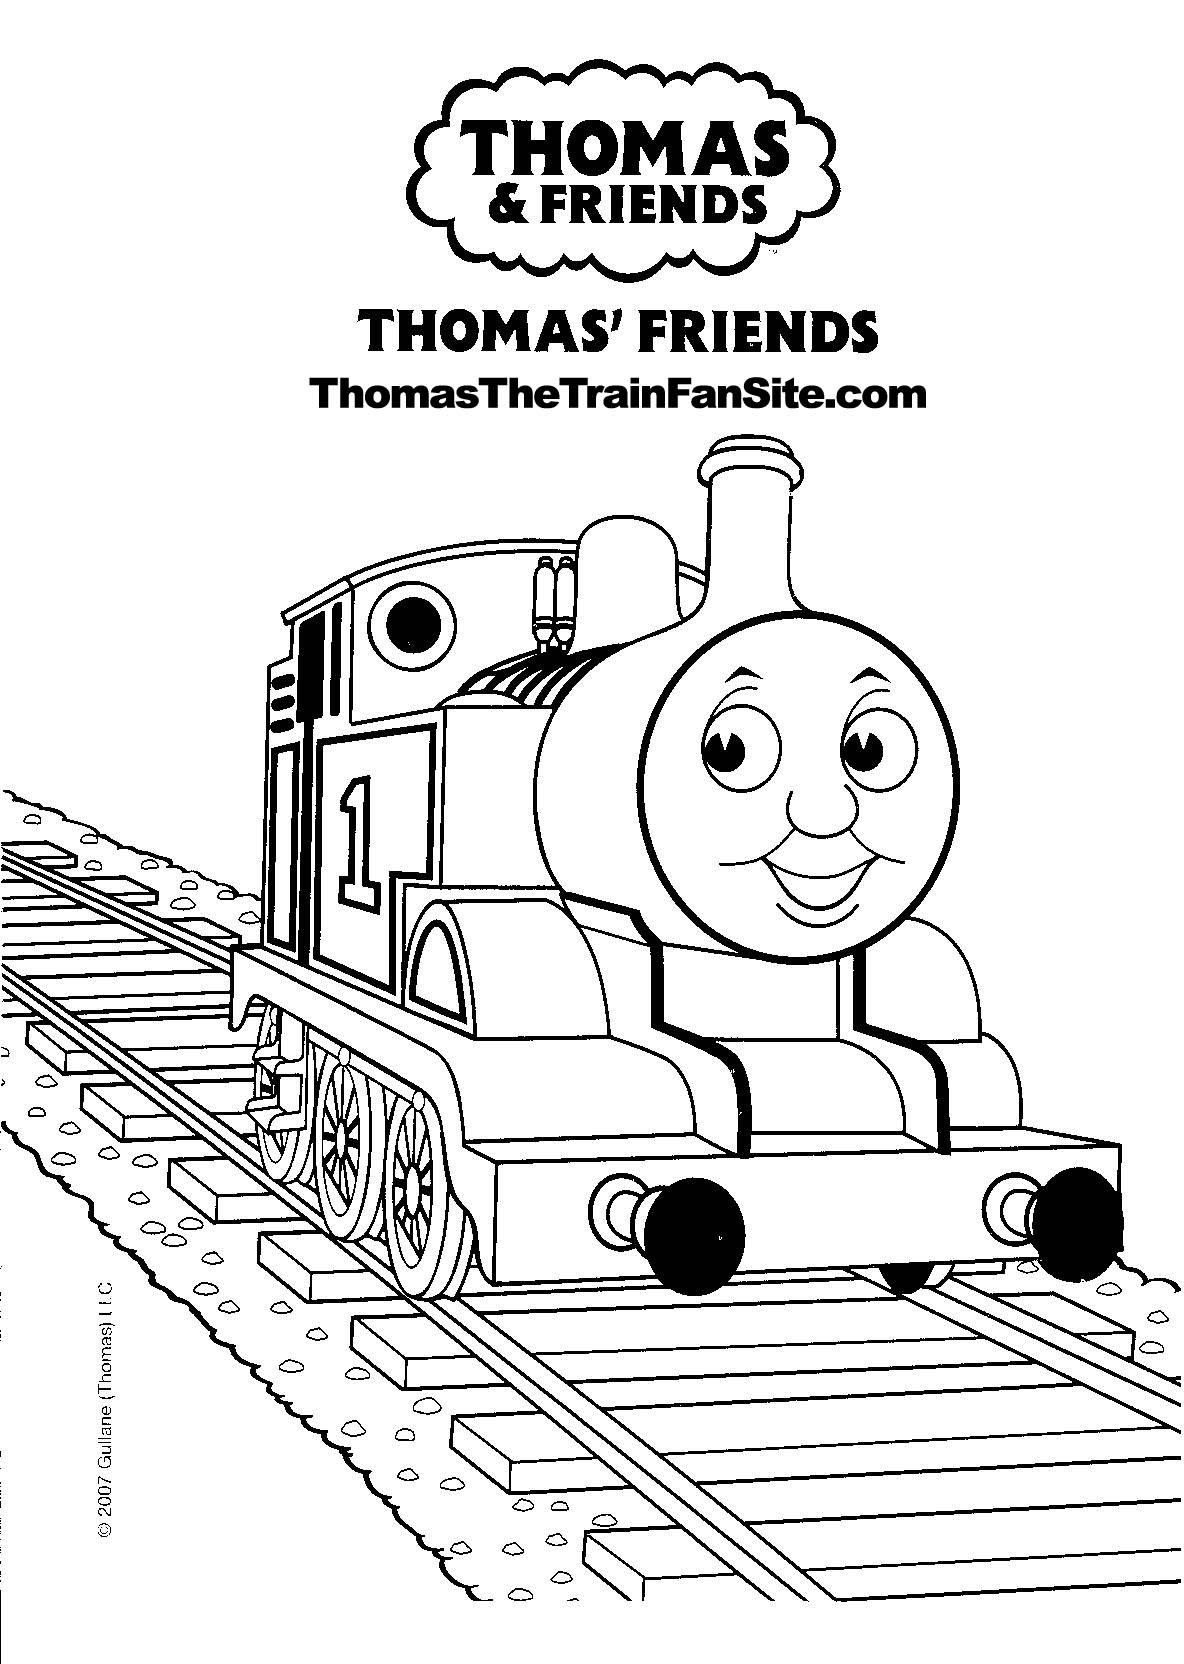 thomas and friends coloring pages thomas and friends for children thomas and friends kids thomas coloring and friends pages